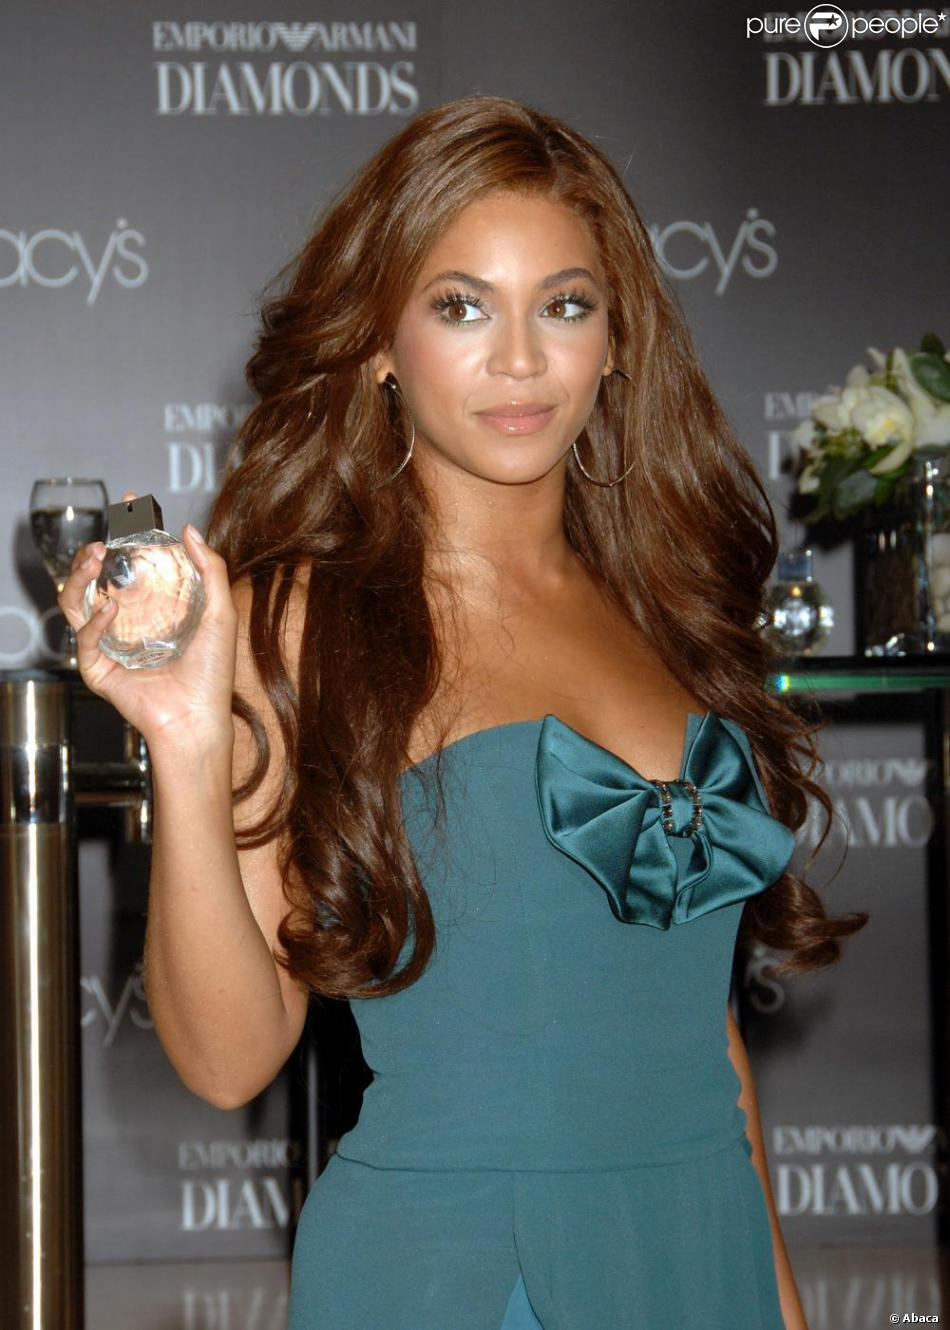 beyonc knowles les cheveux extra longs couleur marron glac purepeople. Black Bedroom Furniture Sets. Home Design Ideas